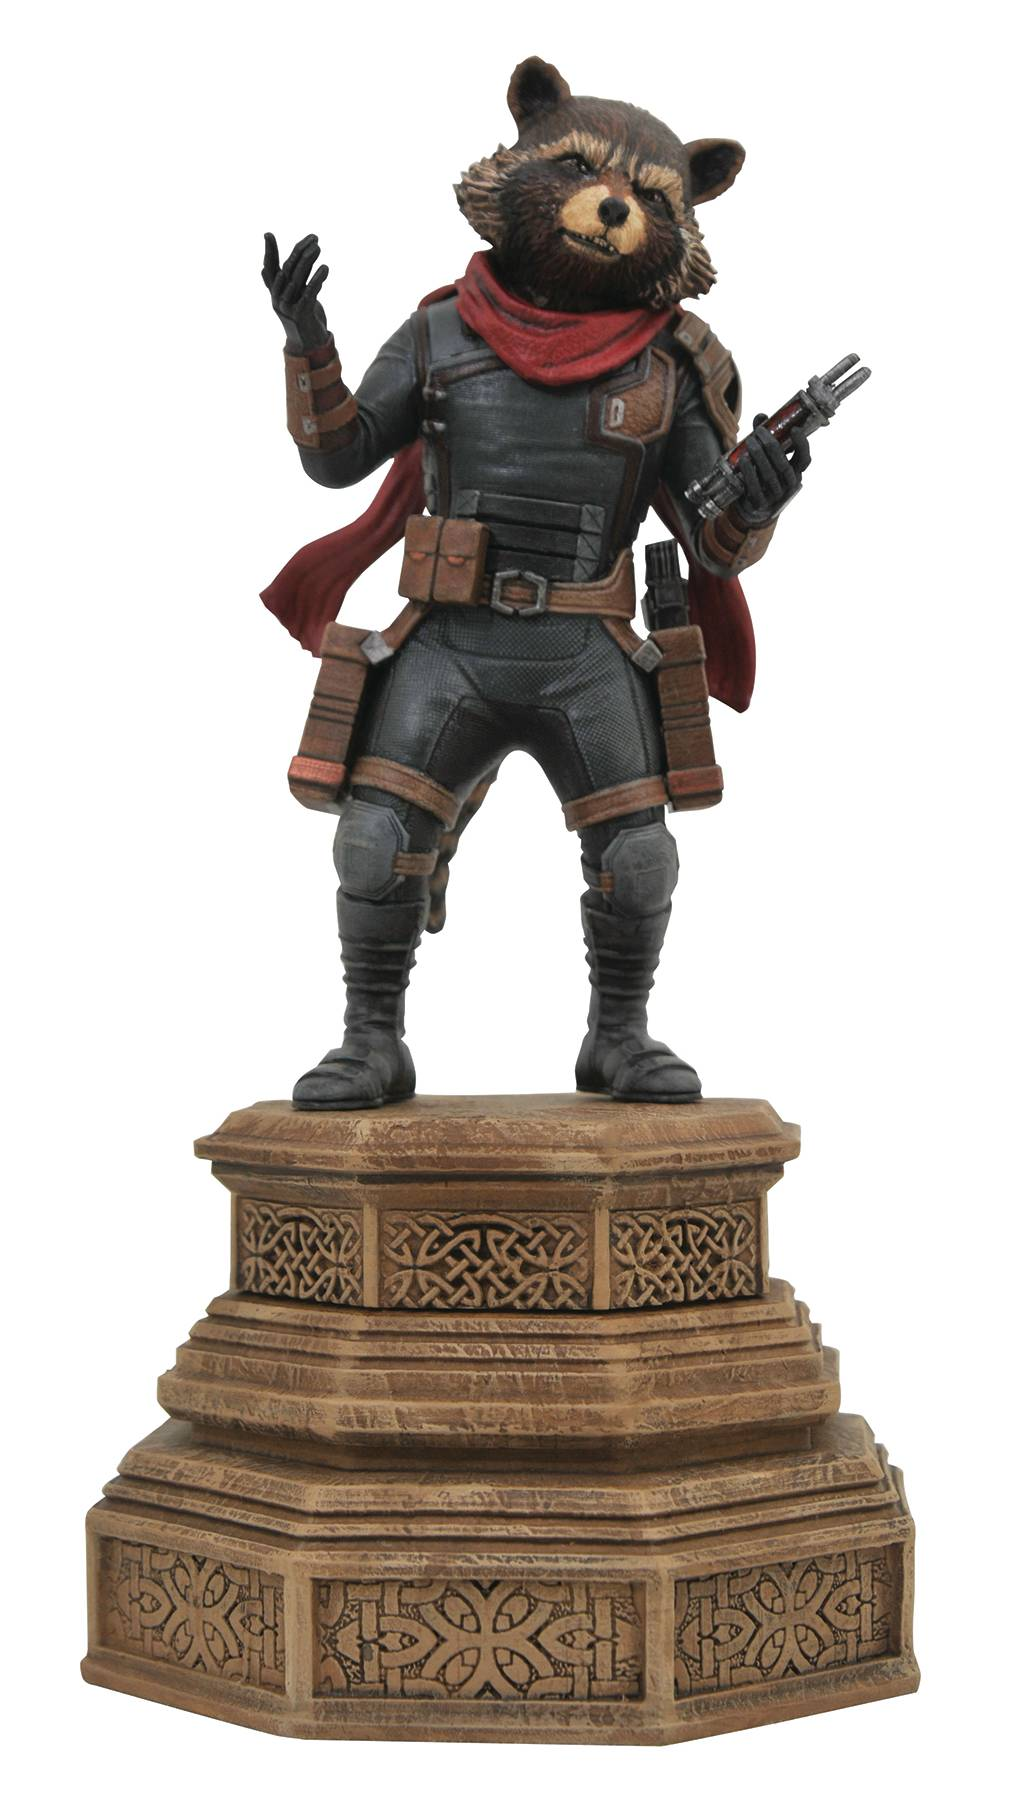 Pre-Order Diamond Marvel Gallery EndGame Rocket Raccoon Statue